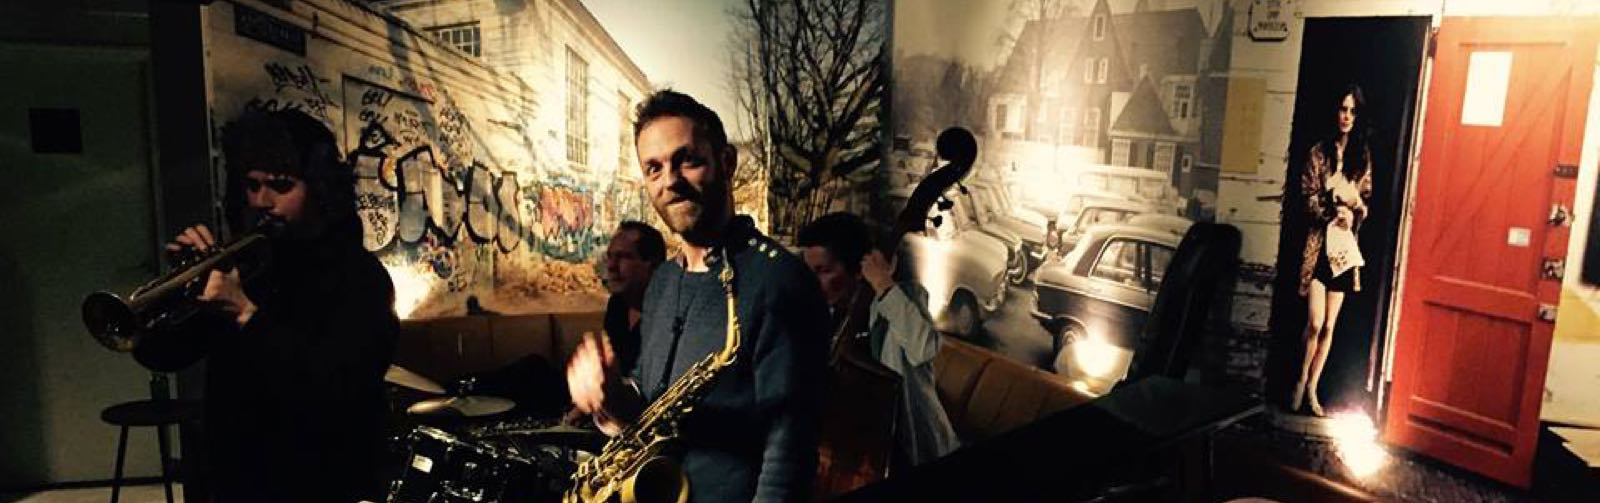 Brasserie NeL jazz session